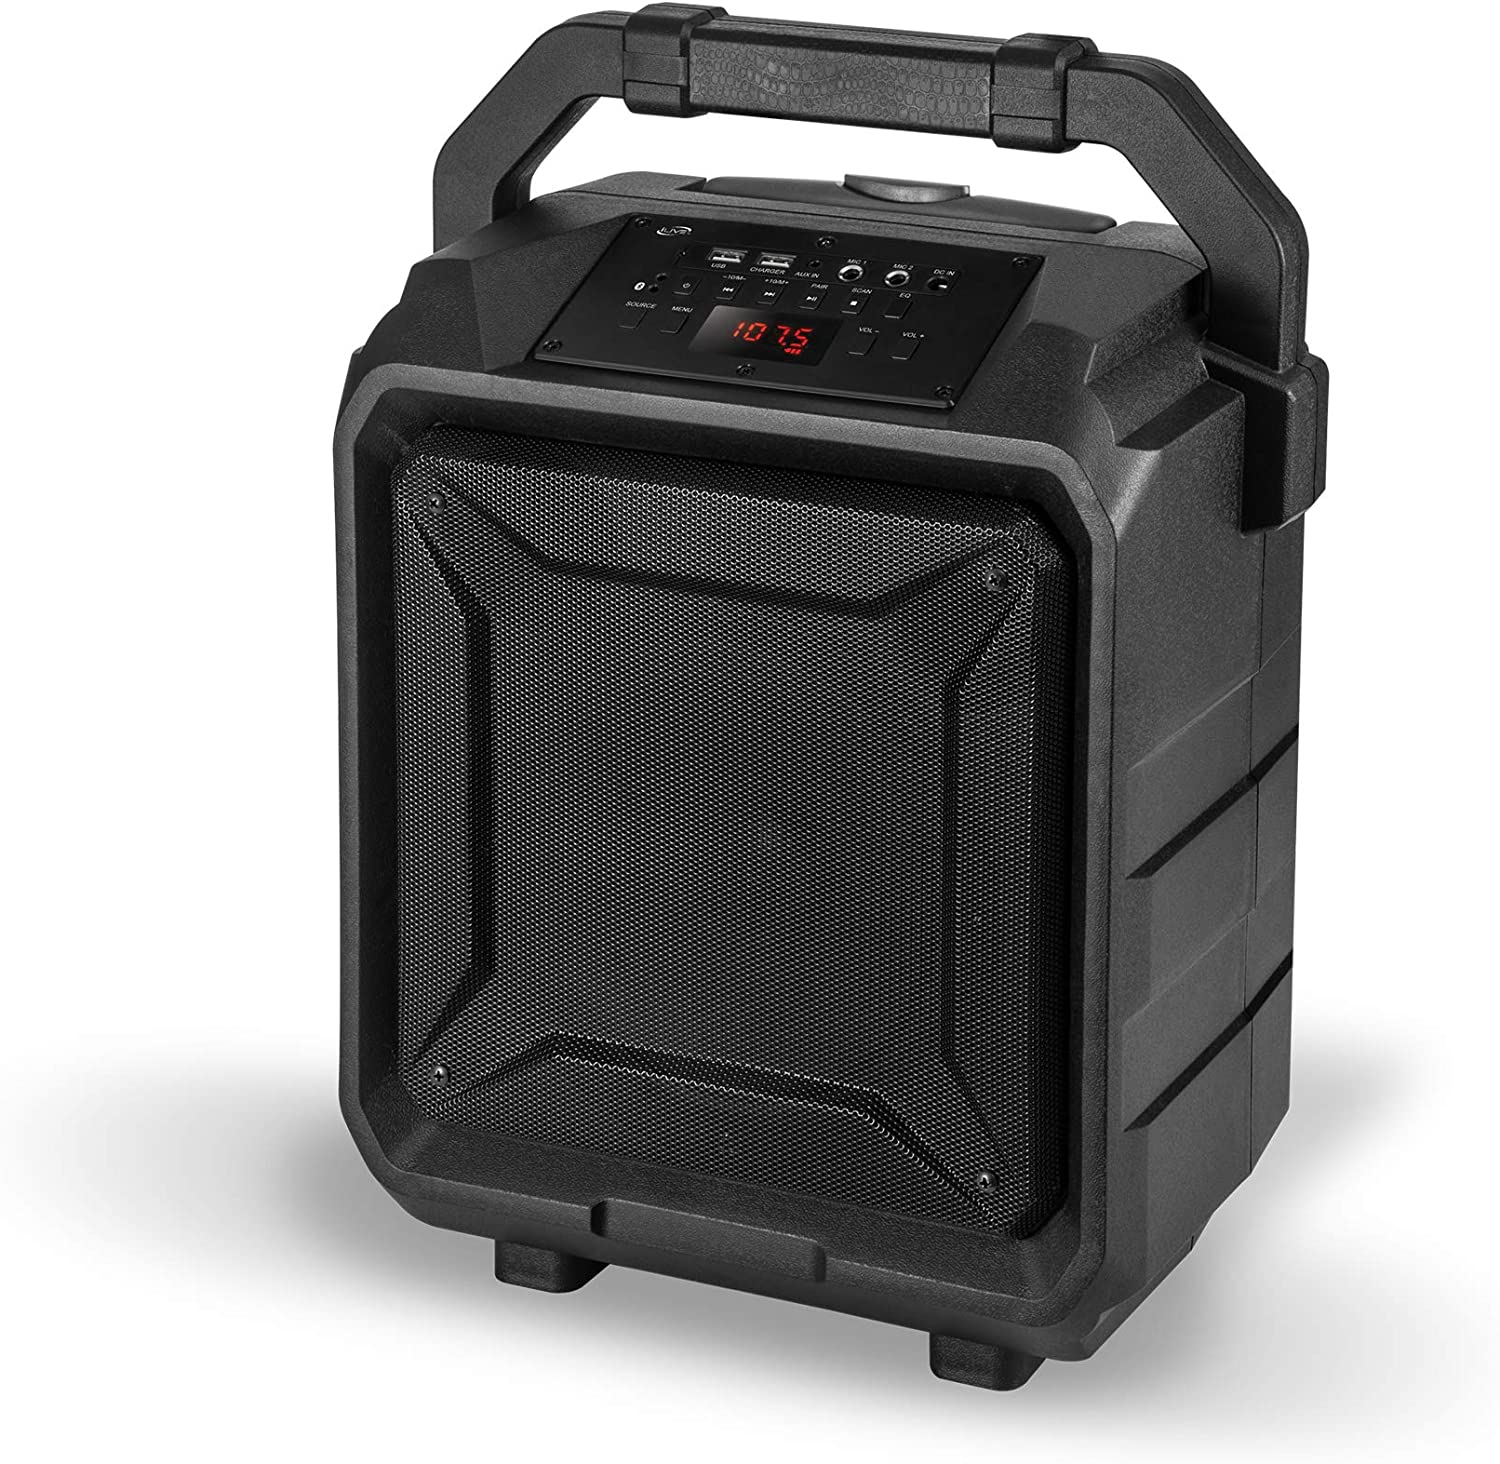 with Built-in Rechargeable Battery and Roller Wheels iLive ISB659B Wireless Tailgate Party Speaker Black